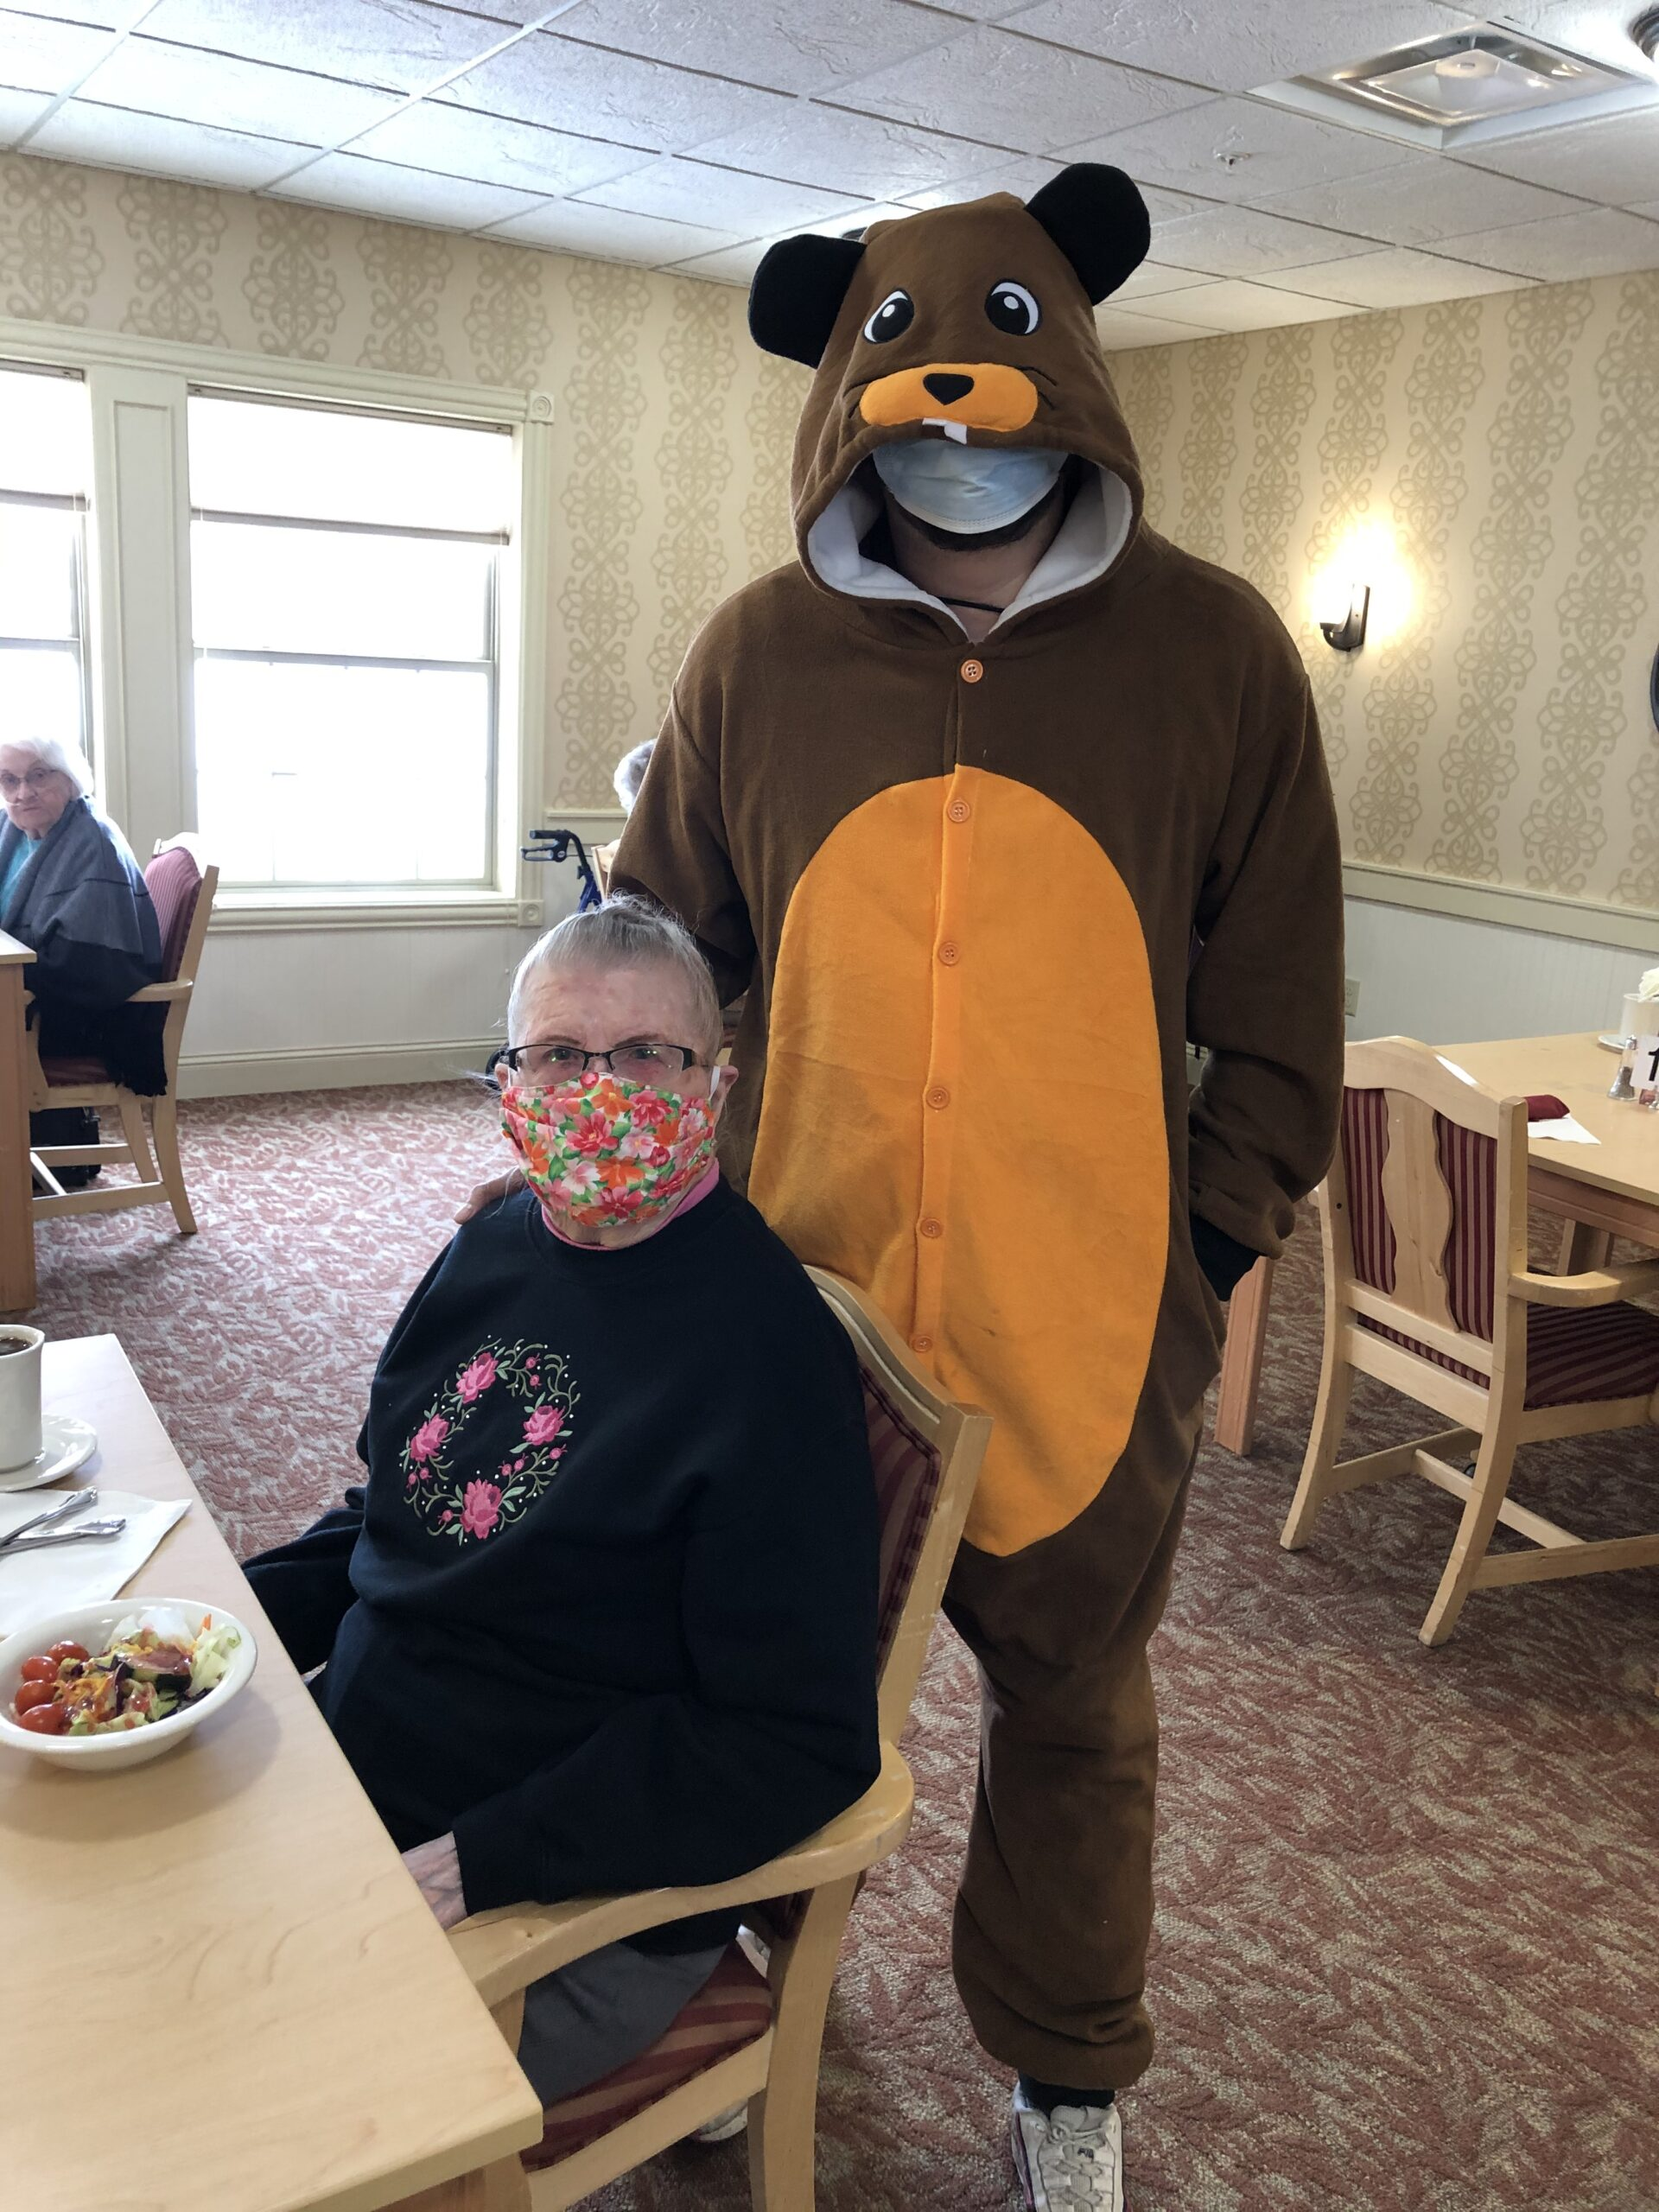 The Groundhog made an appearance at our community!